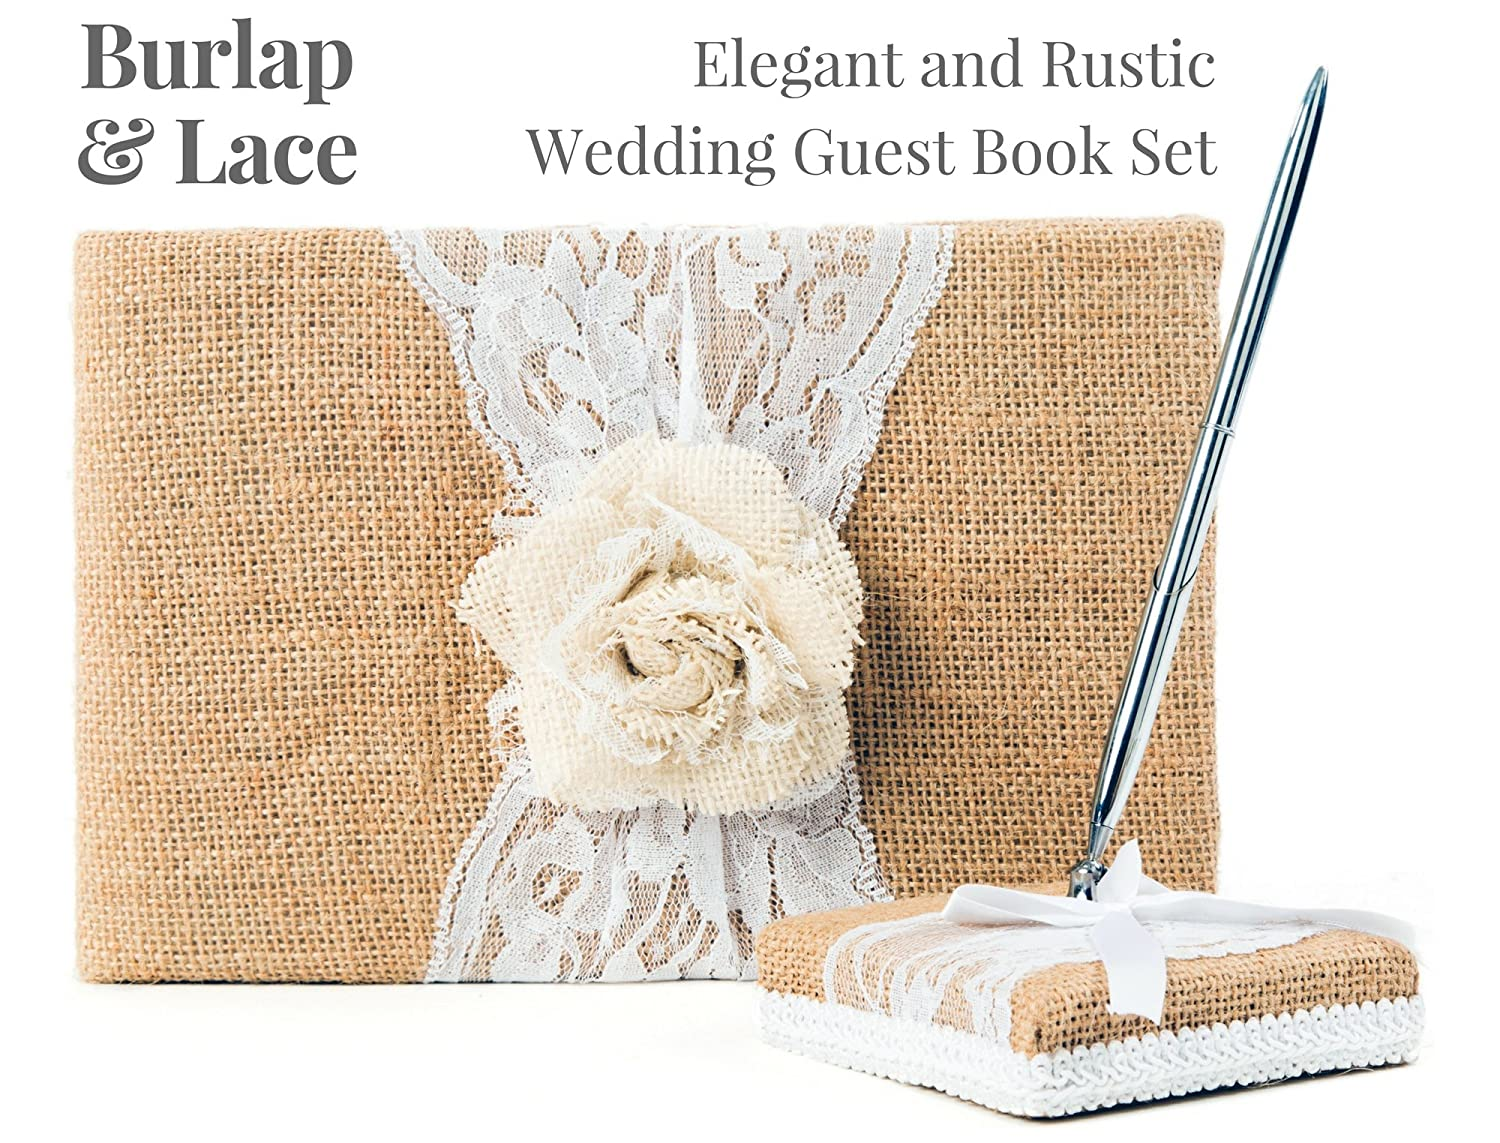 Comes in Gift Box Rustic Wedding Guest Book Made of Burlap and Lace 120 Lined Pages for Guest Thoughts White Rose Includes Burlap Pen Holder and Silver Pen